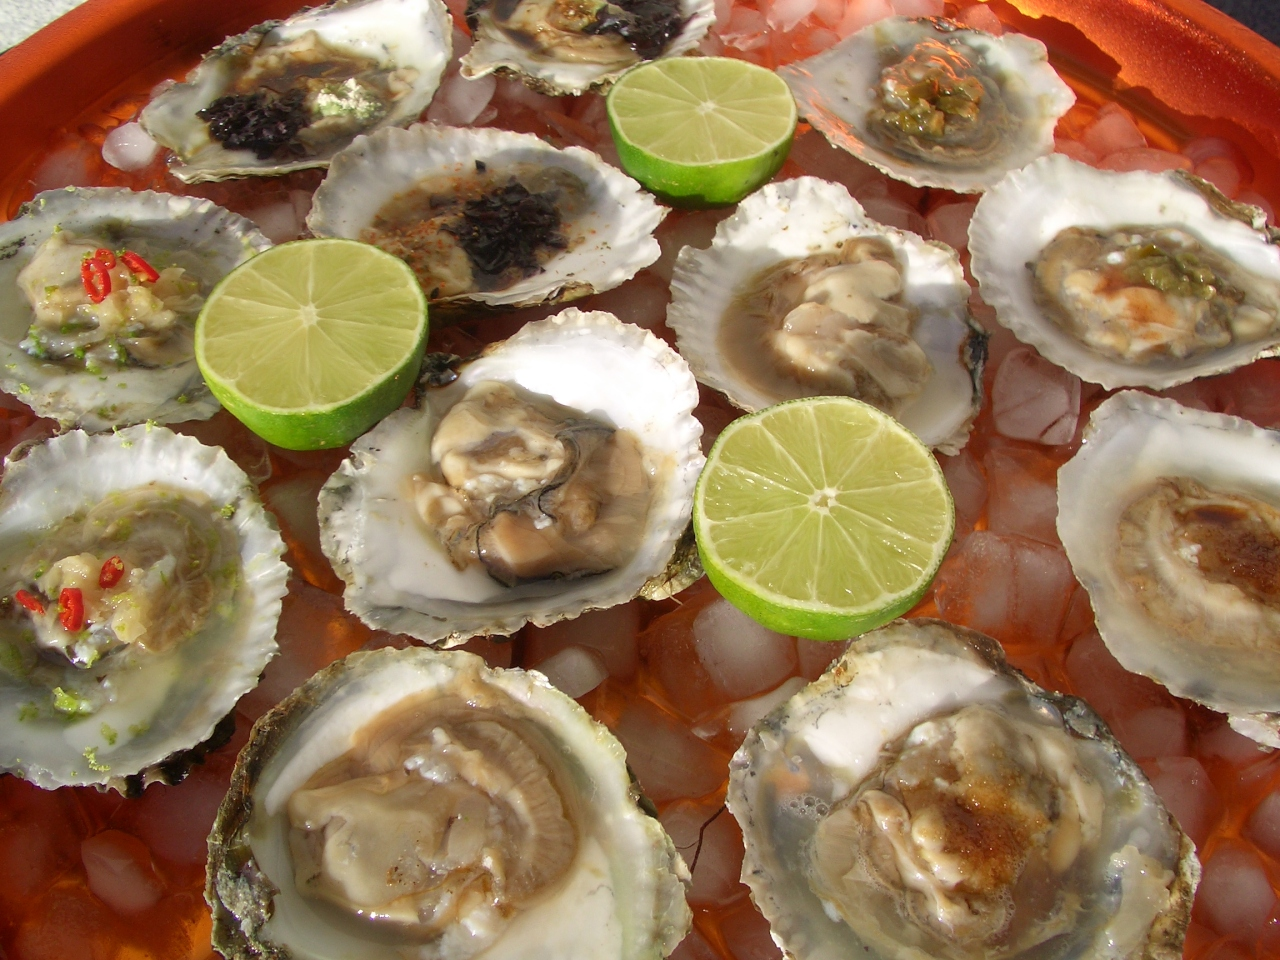 Ostras Variadas – Assorted Oysters